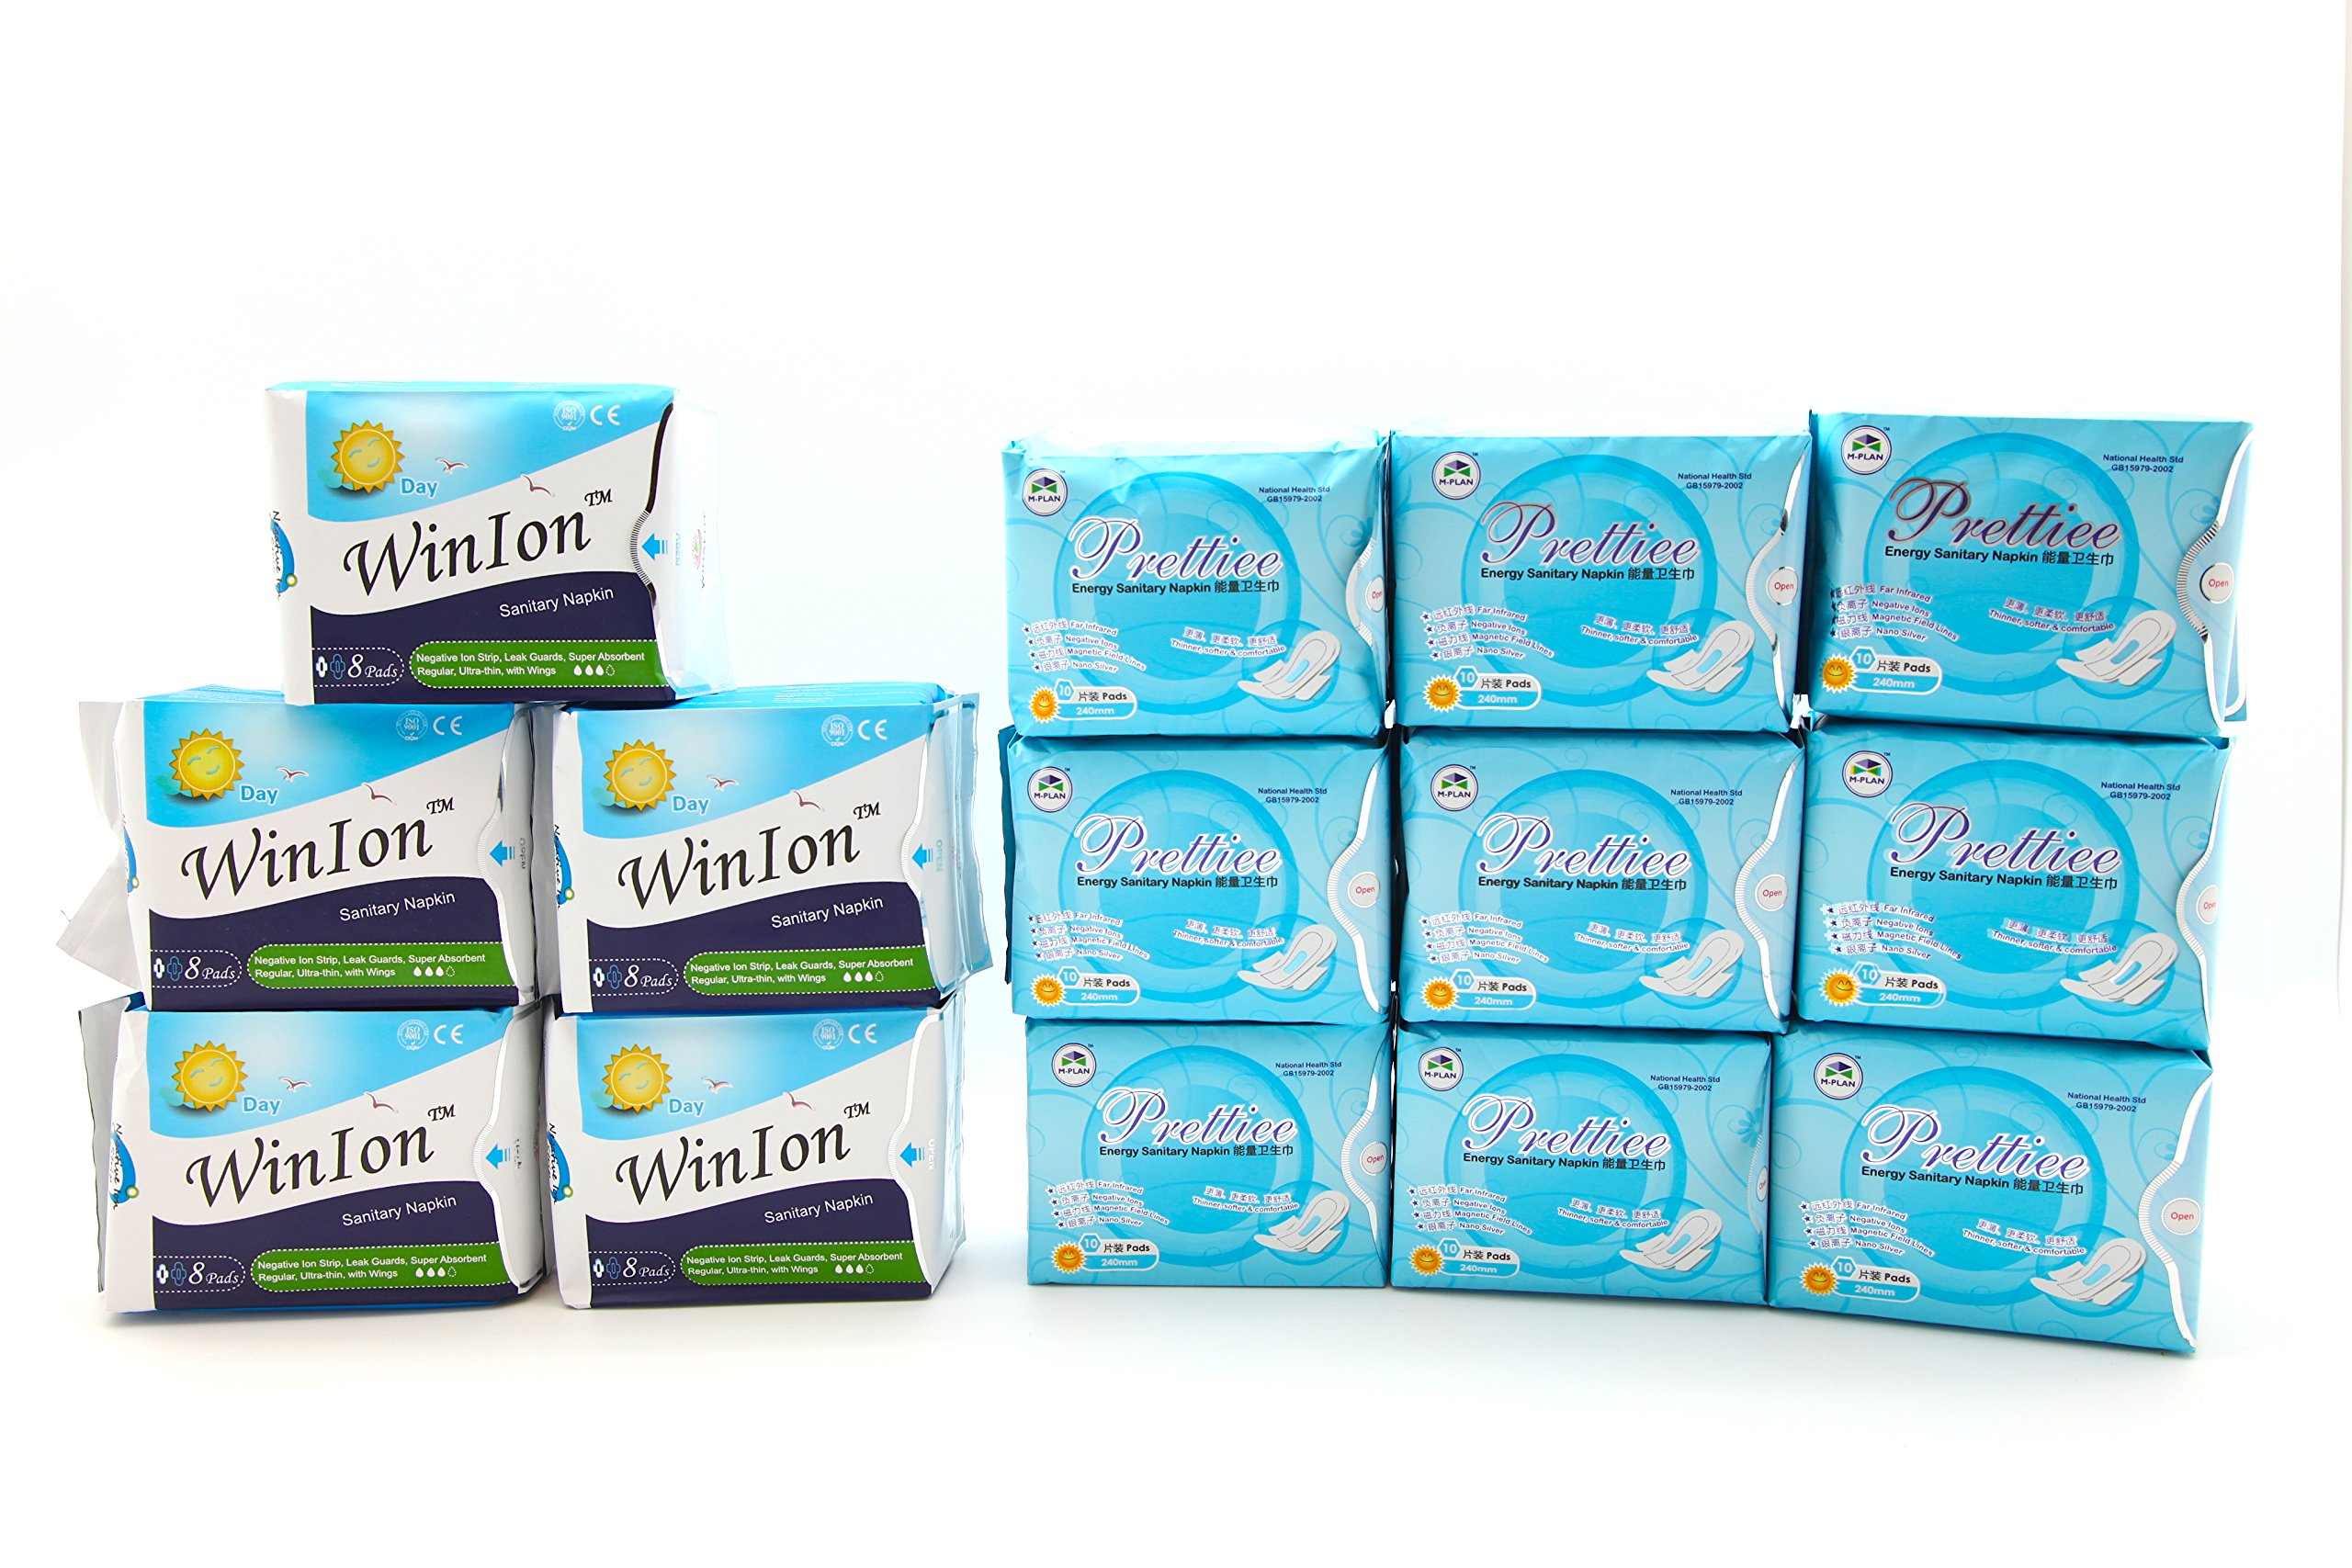 5 packs Winion Day + 9 packs Prettiee Energy Sanitary Day Napkin by Prettiee (Image #1)